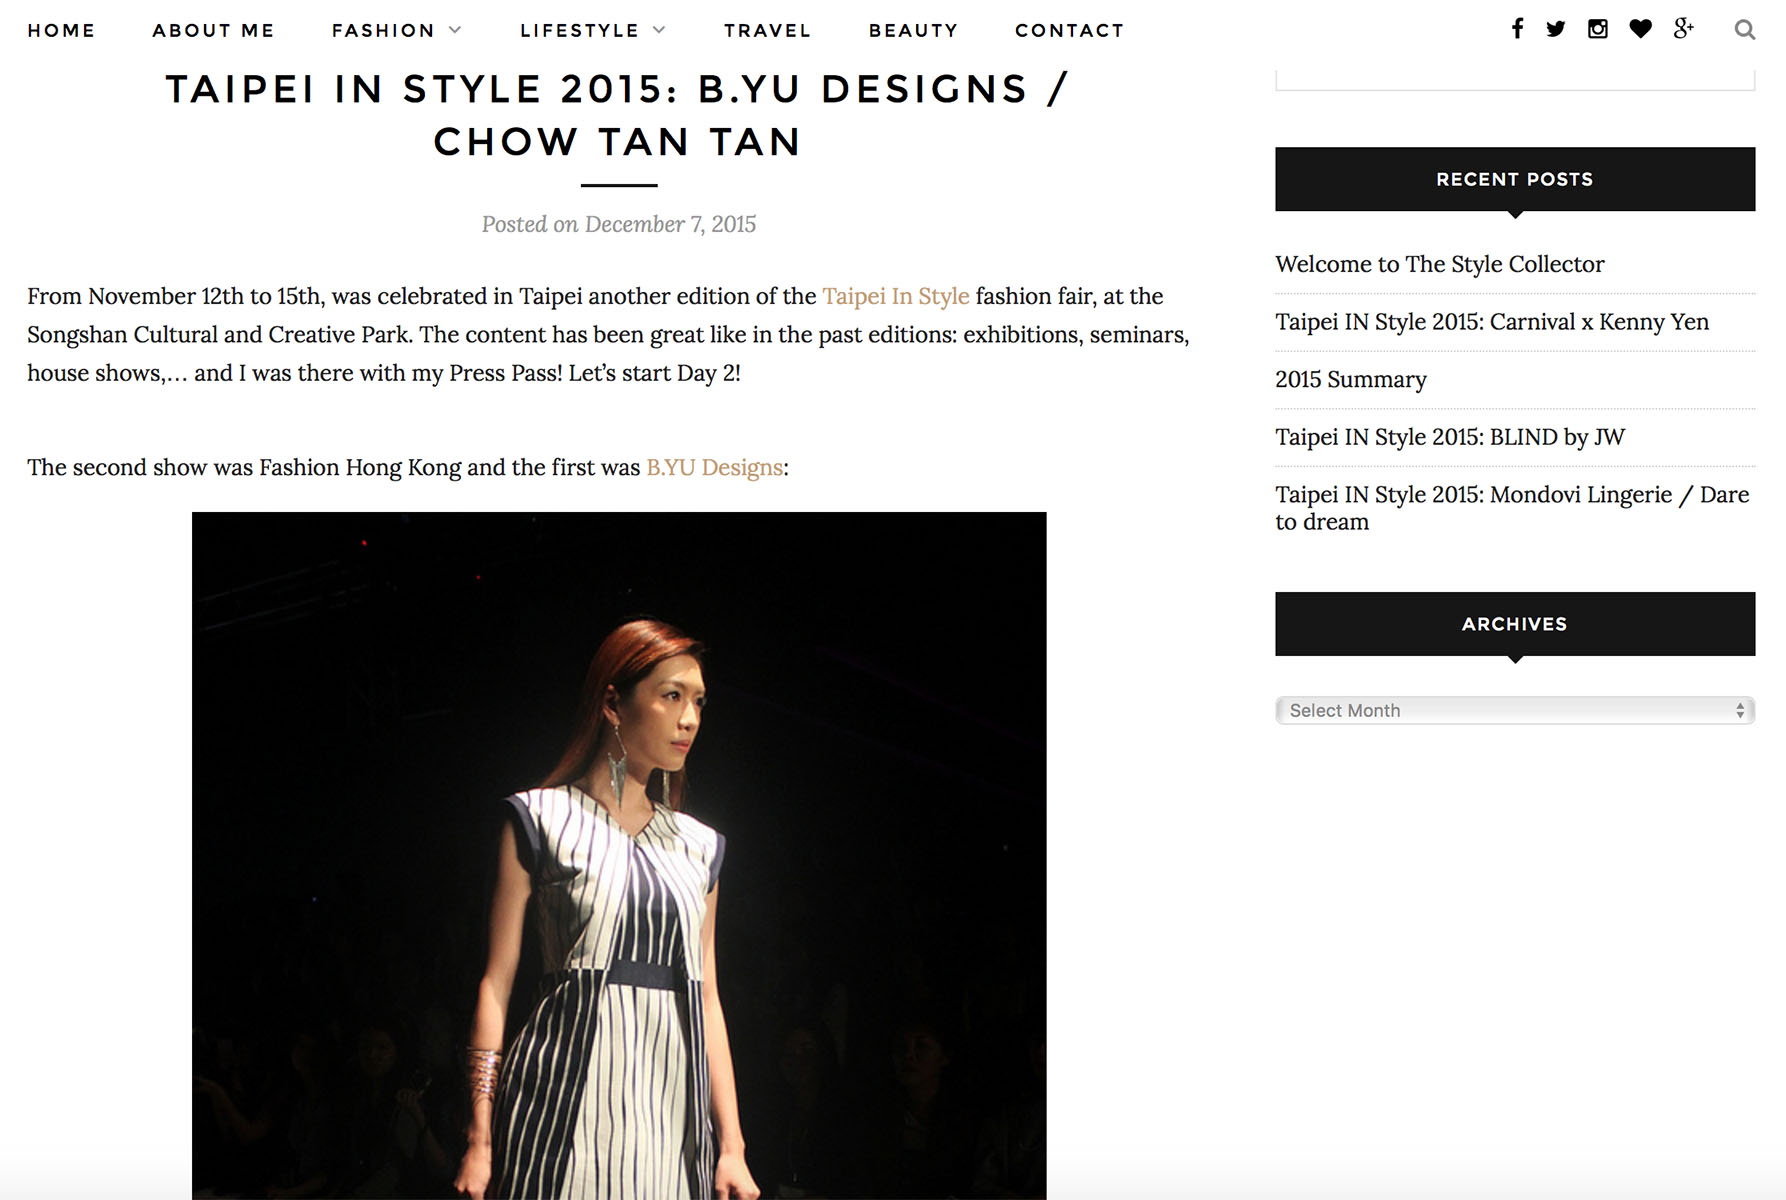 THE STYLE COLLECTOR BLOG  Published 7 December 2015